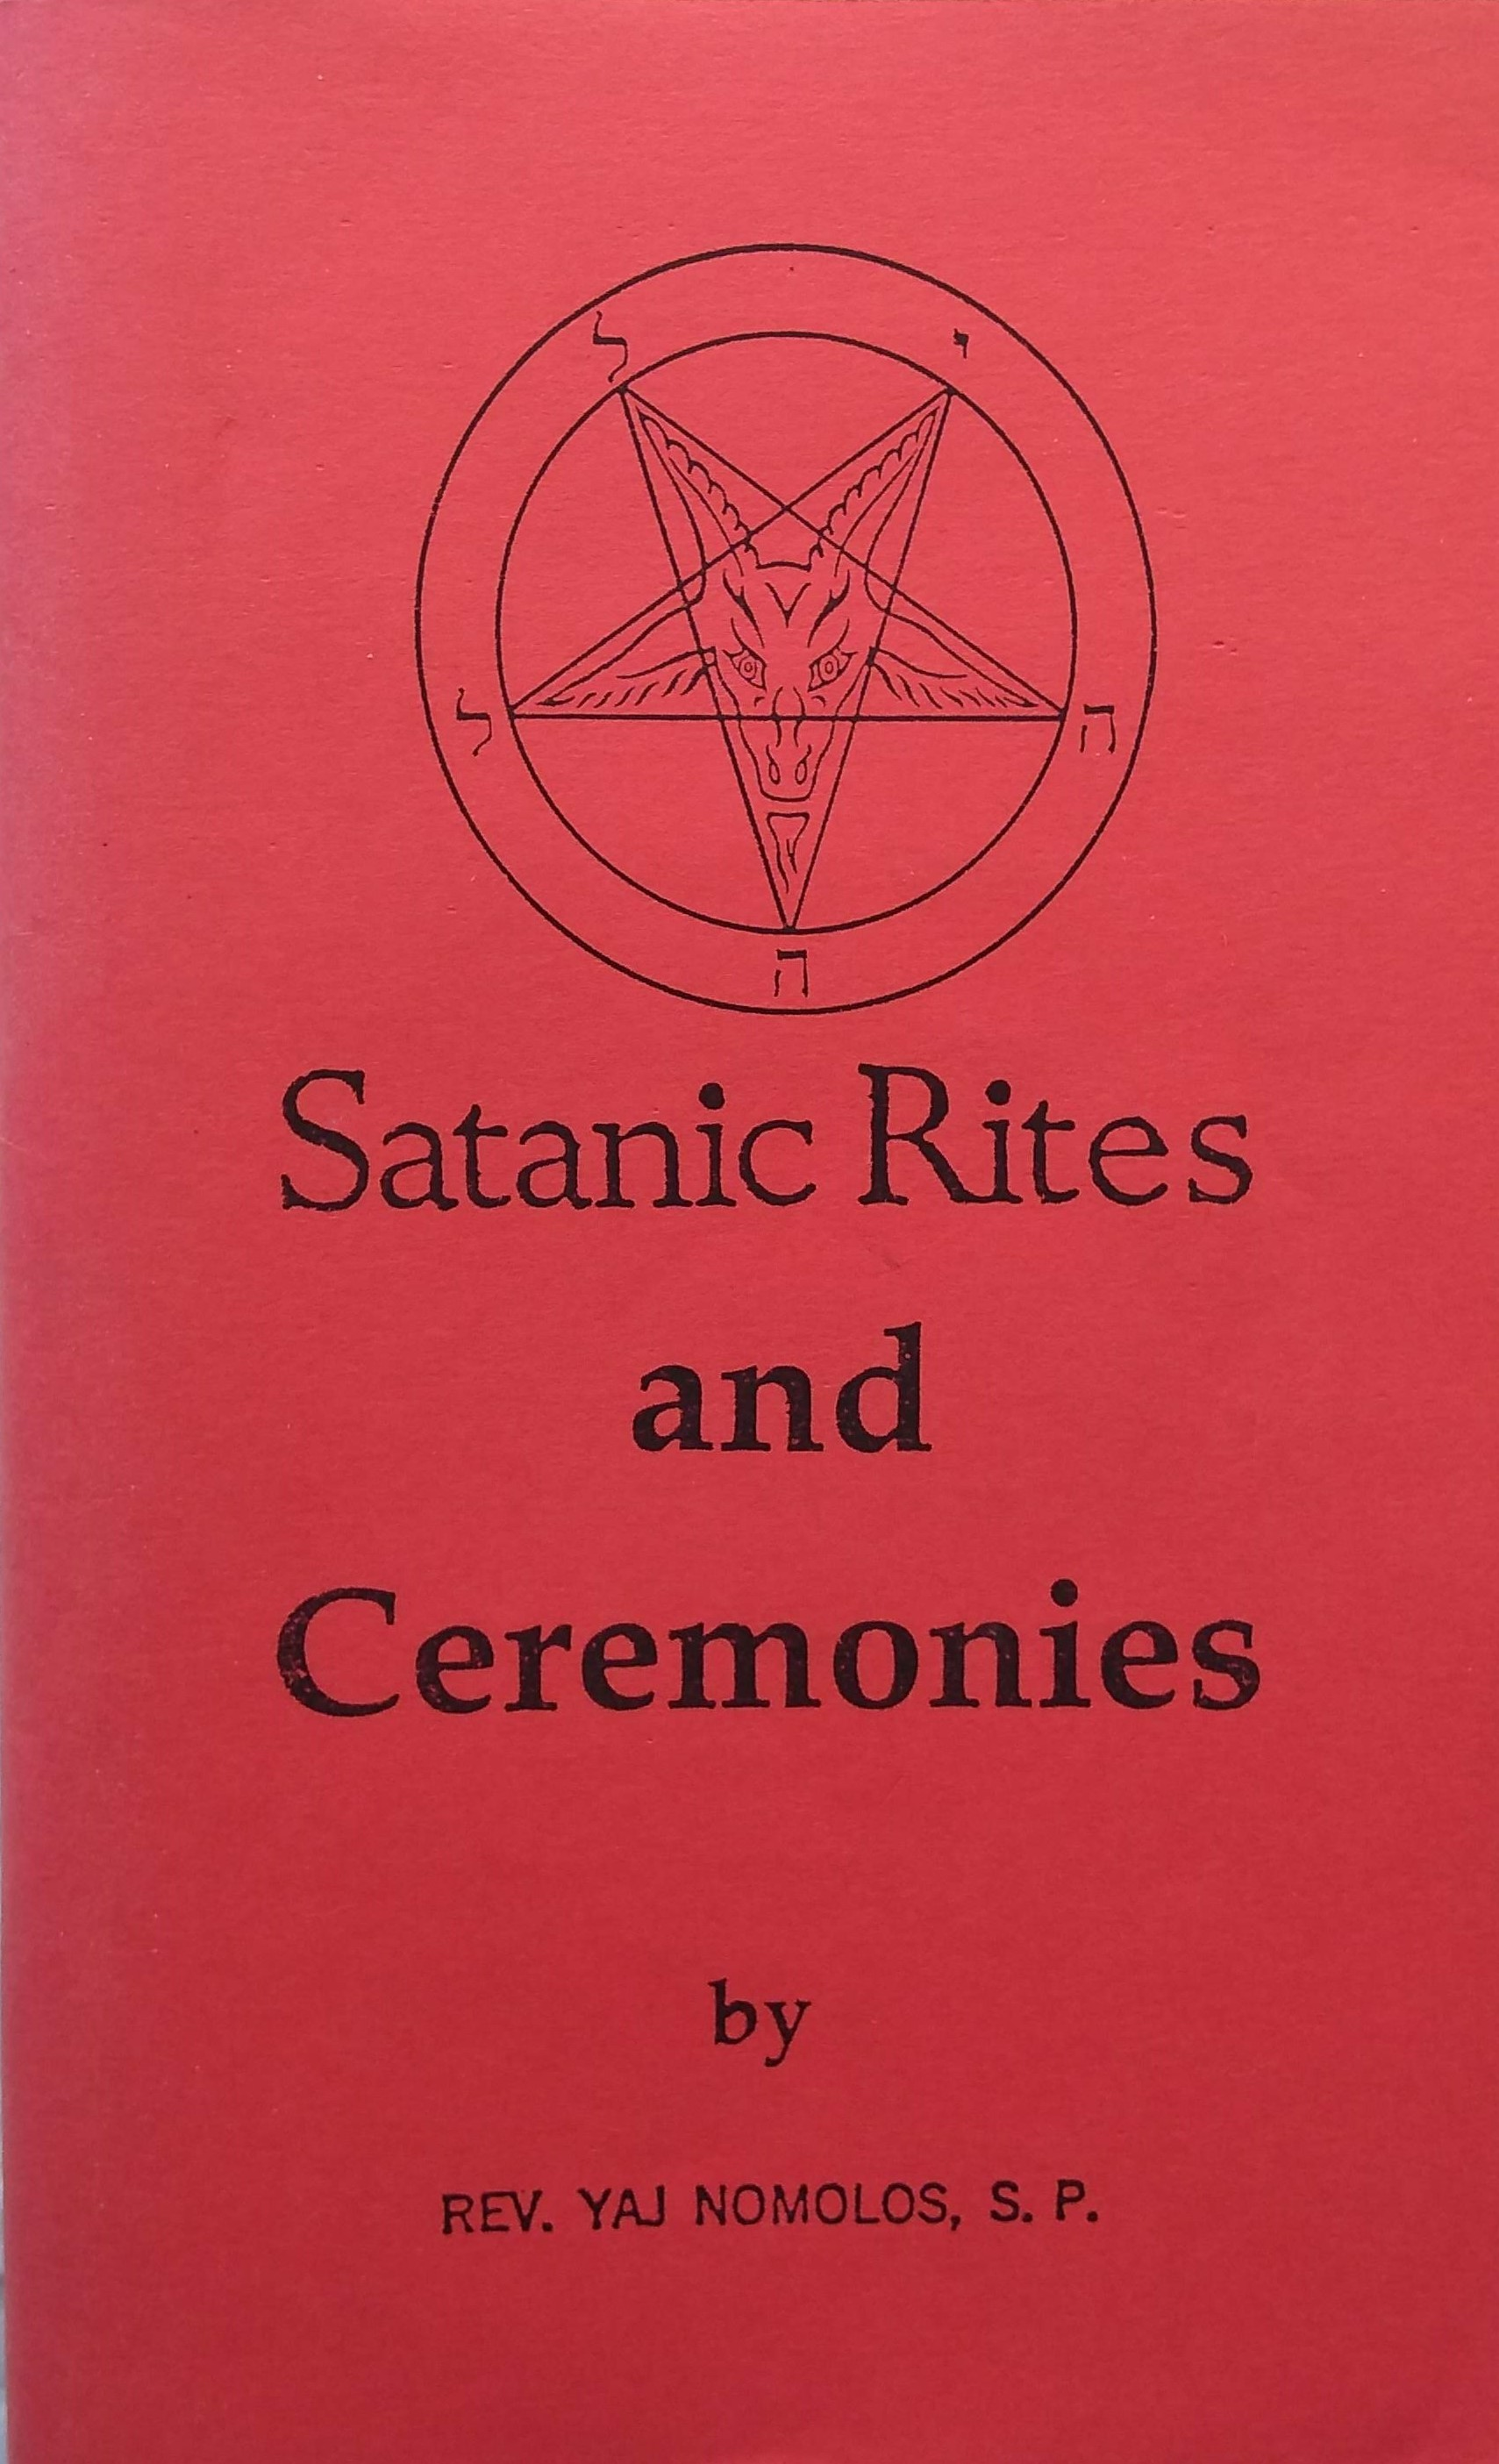 Satanic Rites and Ceremonies